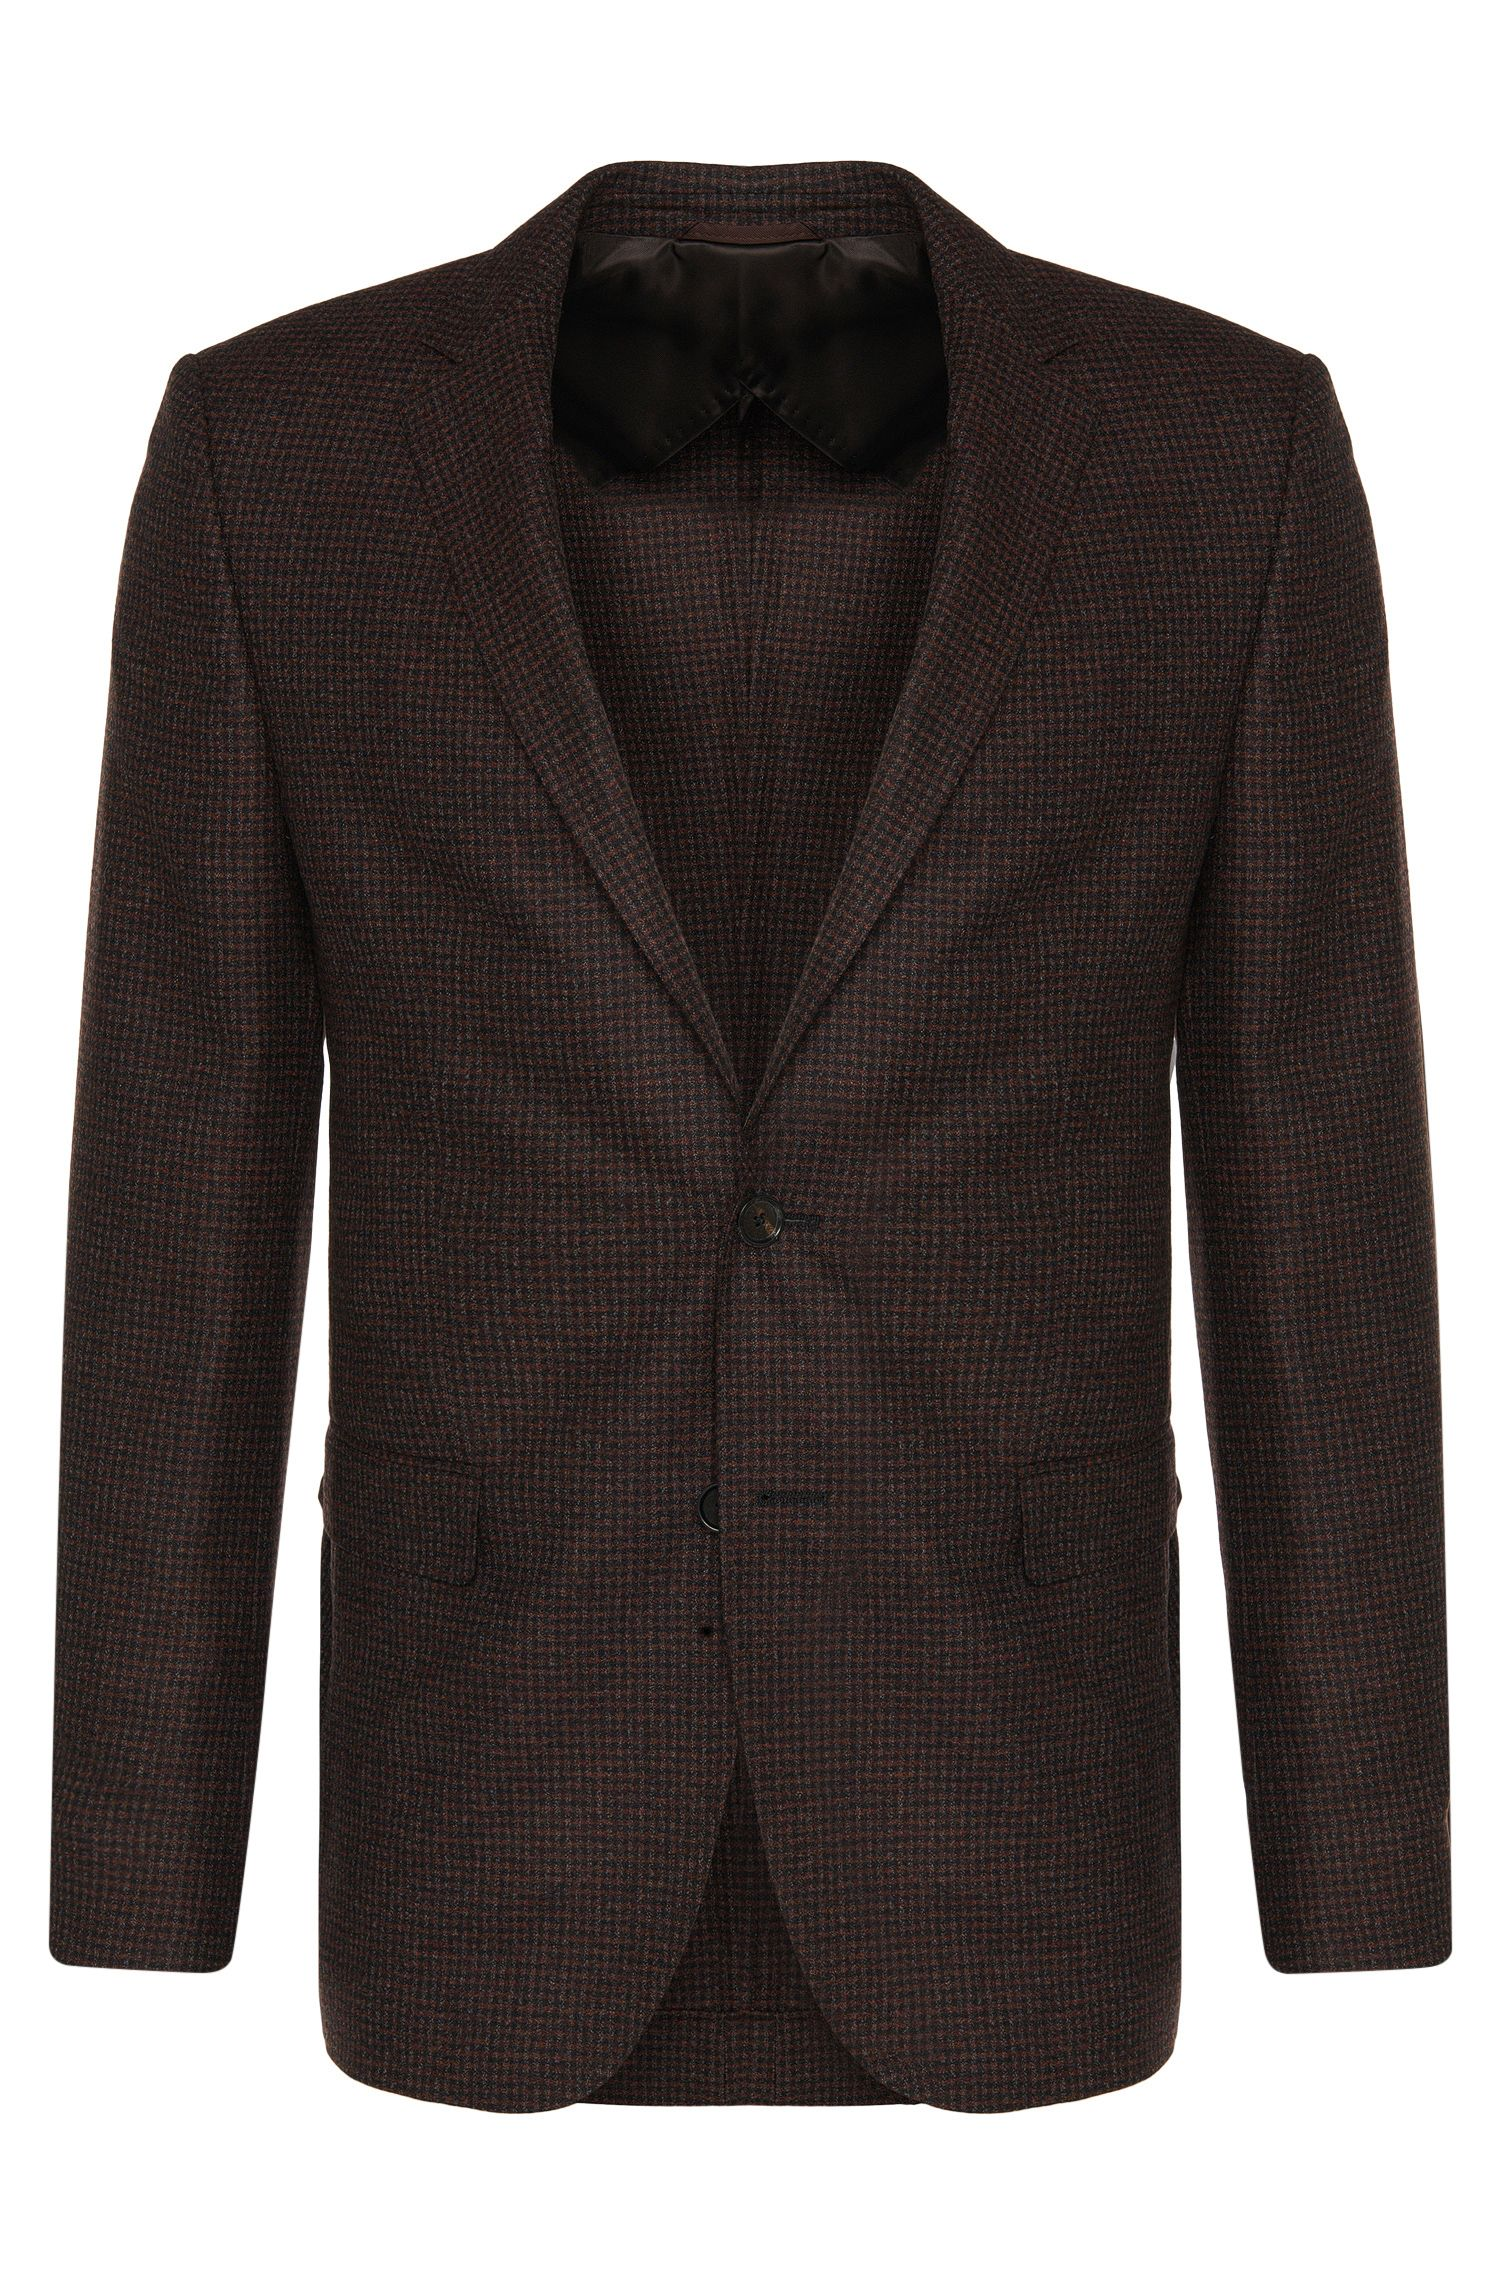 'Nobis' | Slim Fit, Italian Virgin Wool Sport Coat